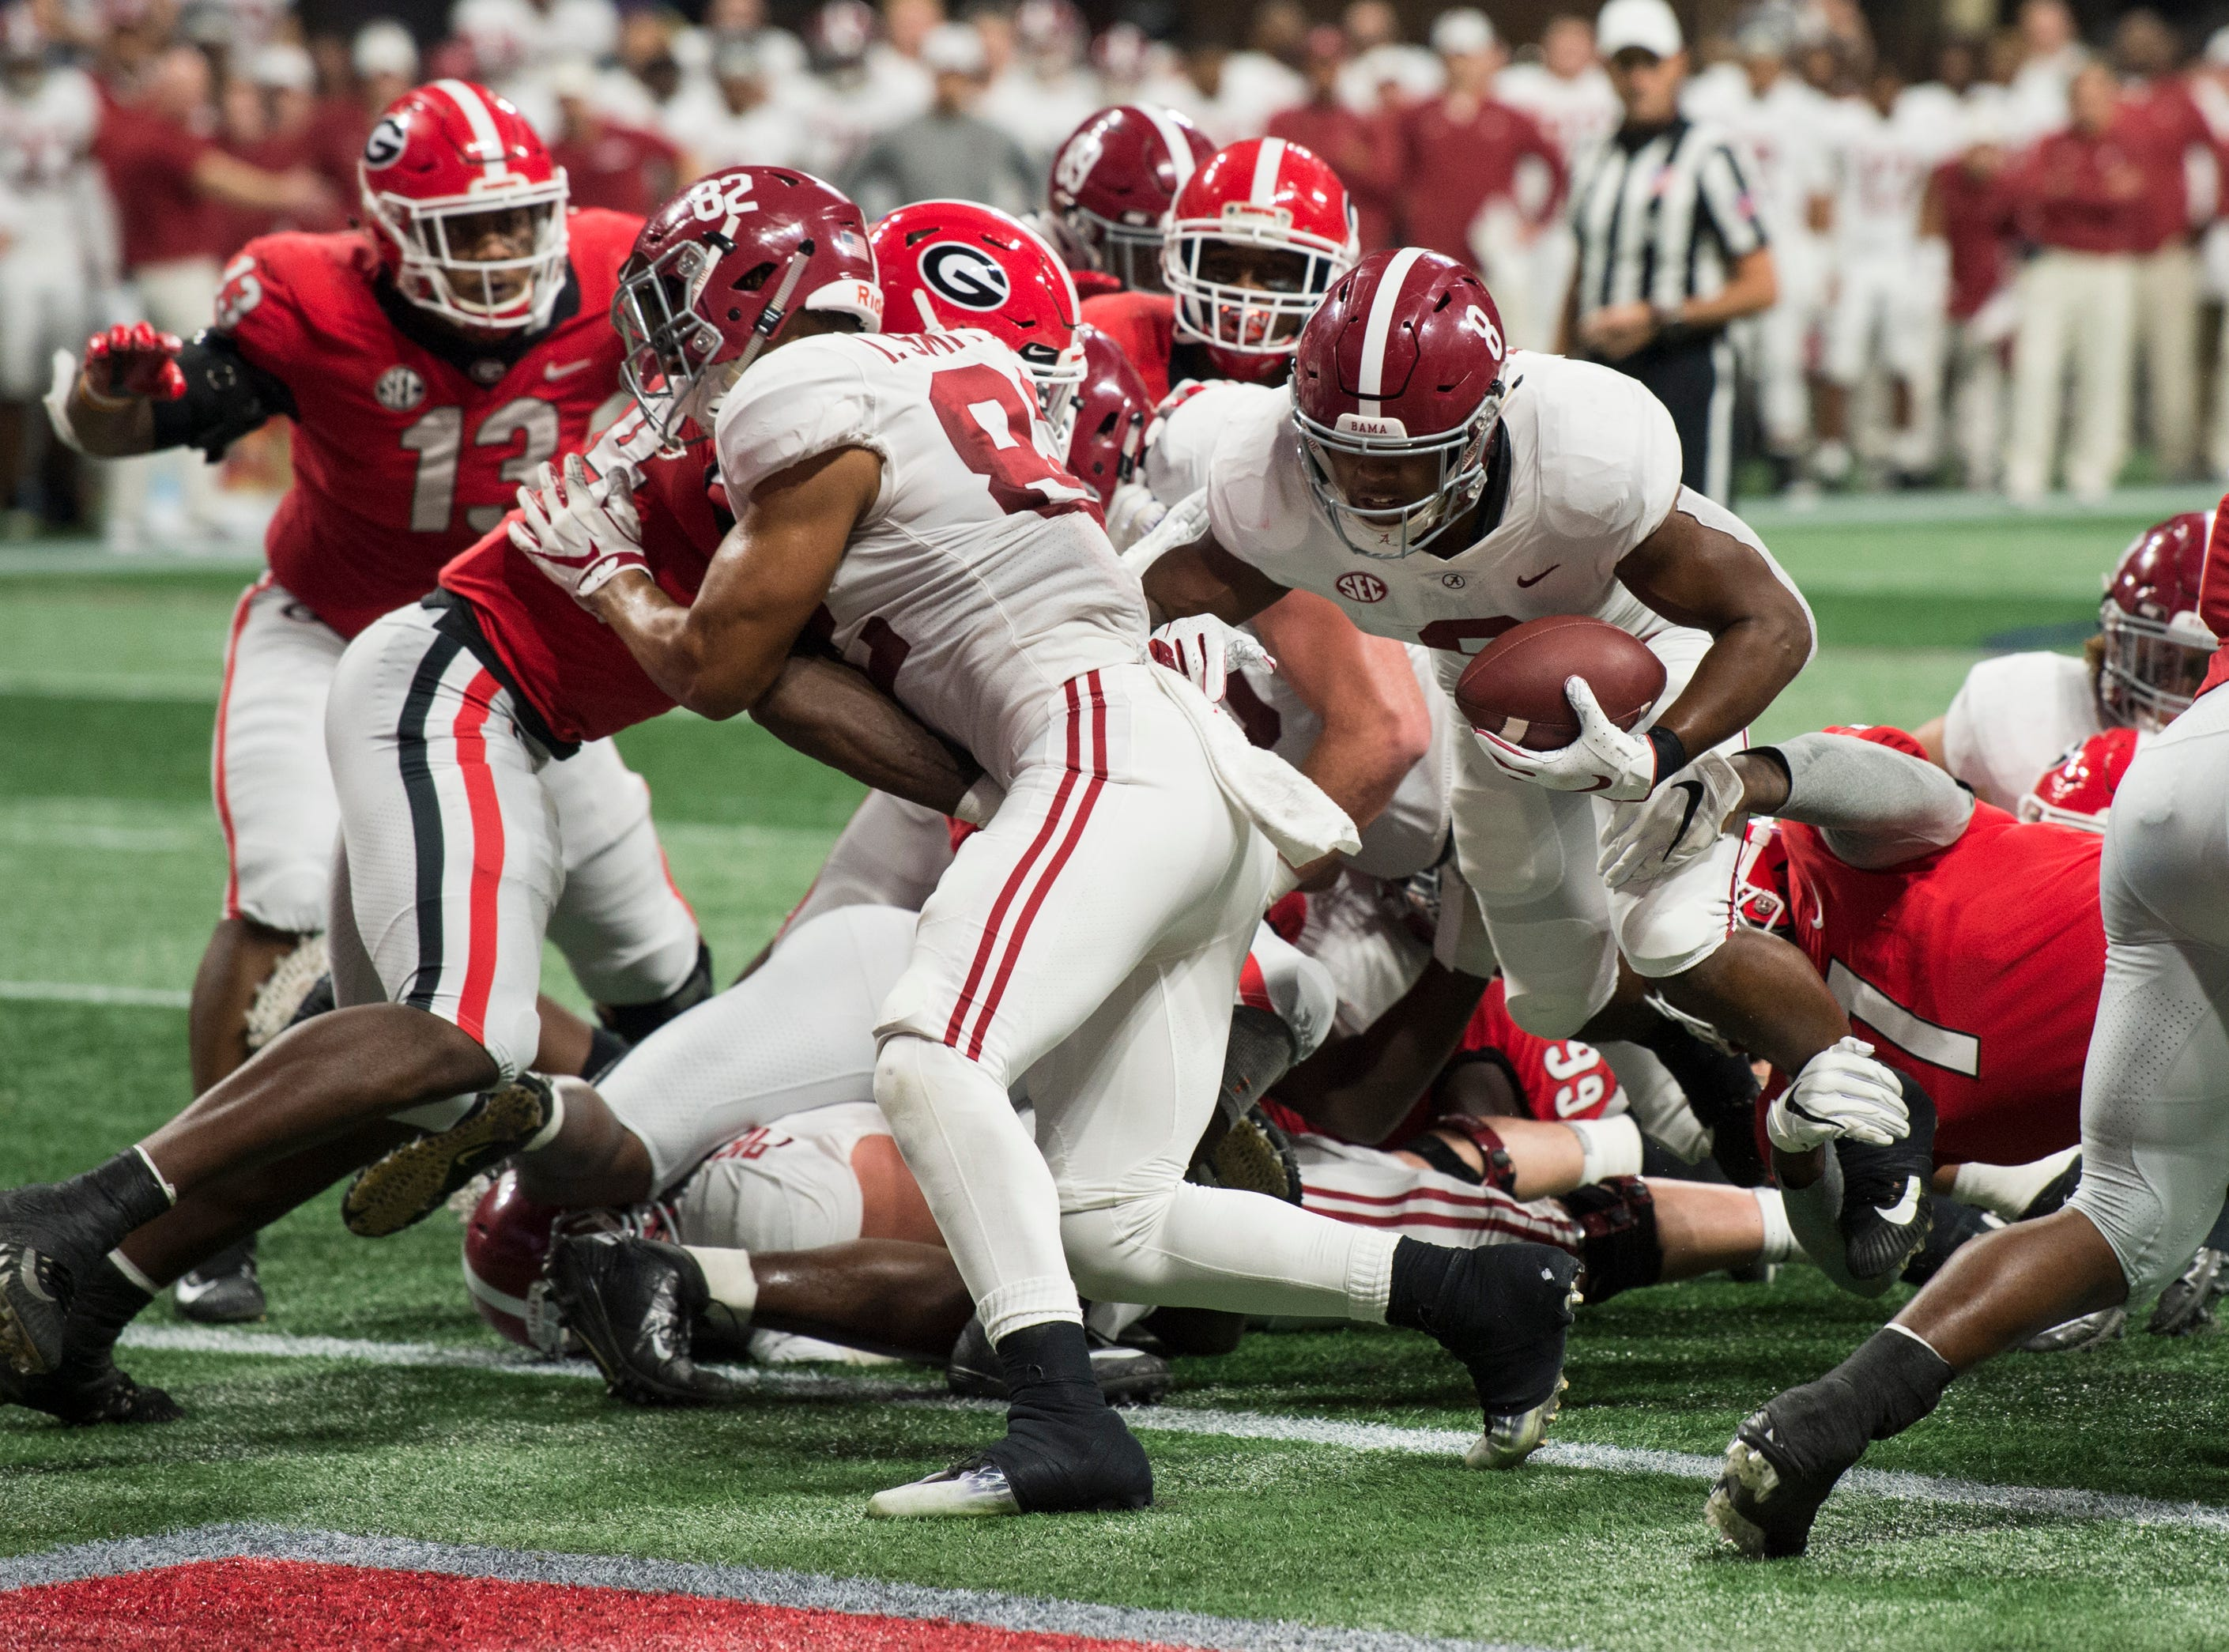 Alabama running back Josh Jacobs (8) runs into the end zone for a touchdown during the SEC Championship game at Mercedes-Benz Stadium in Atlanta, Ga., on Saturday Dec. 1, 2018. Georgia leads Alabama 21-14 at halftime.